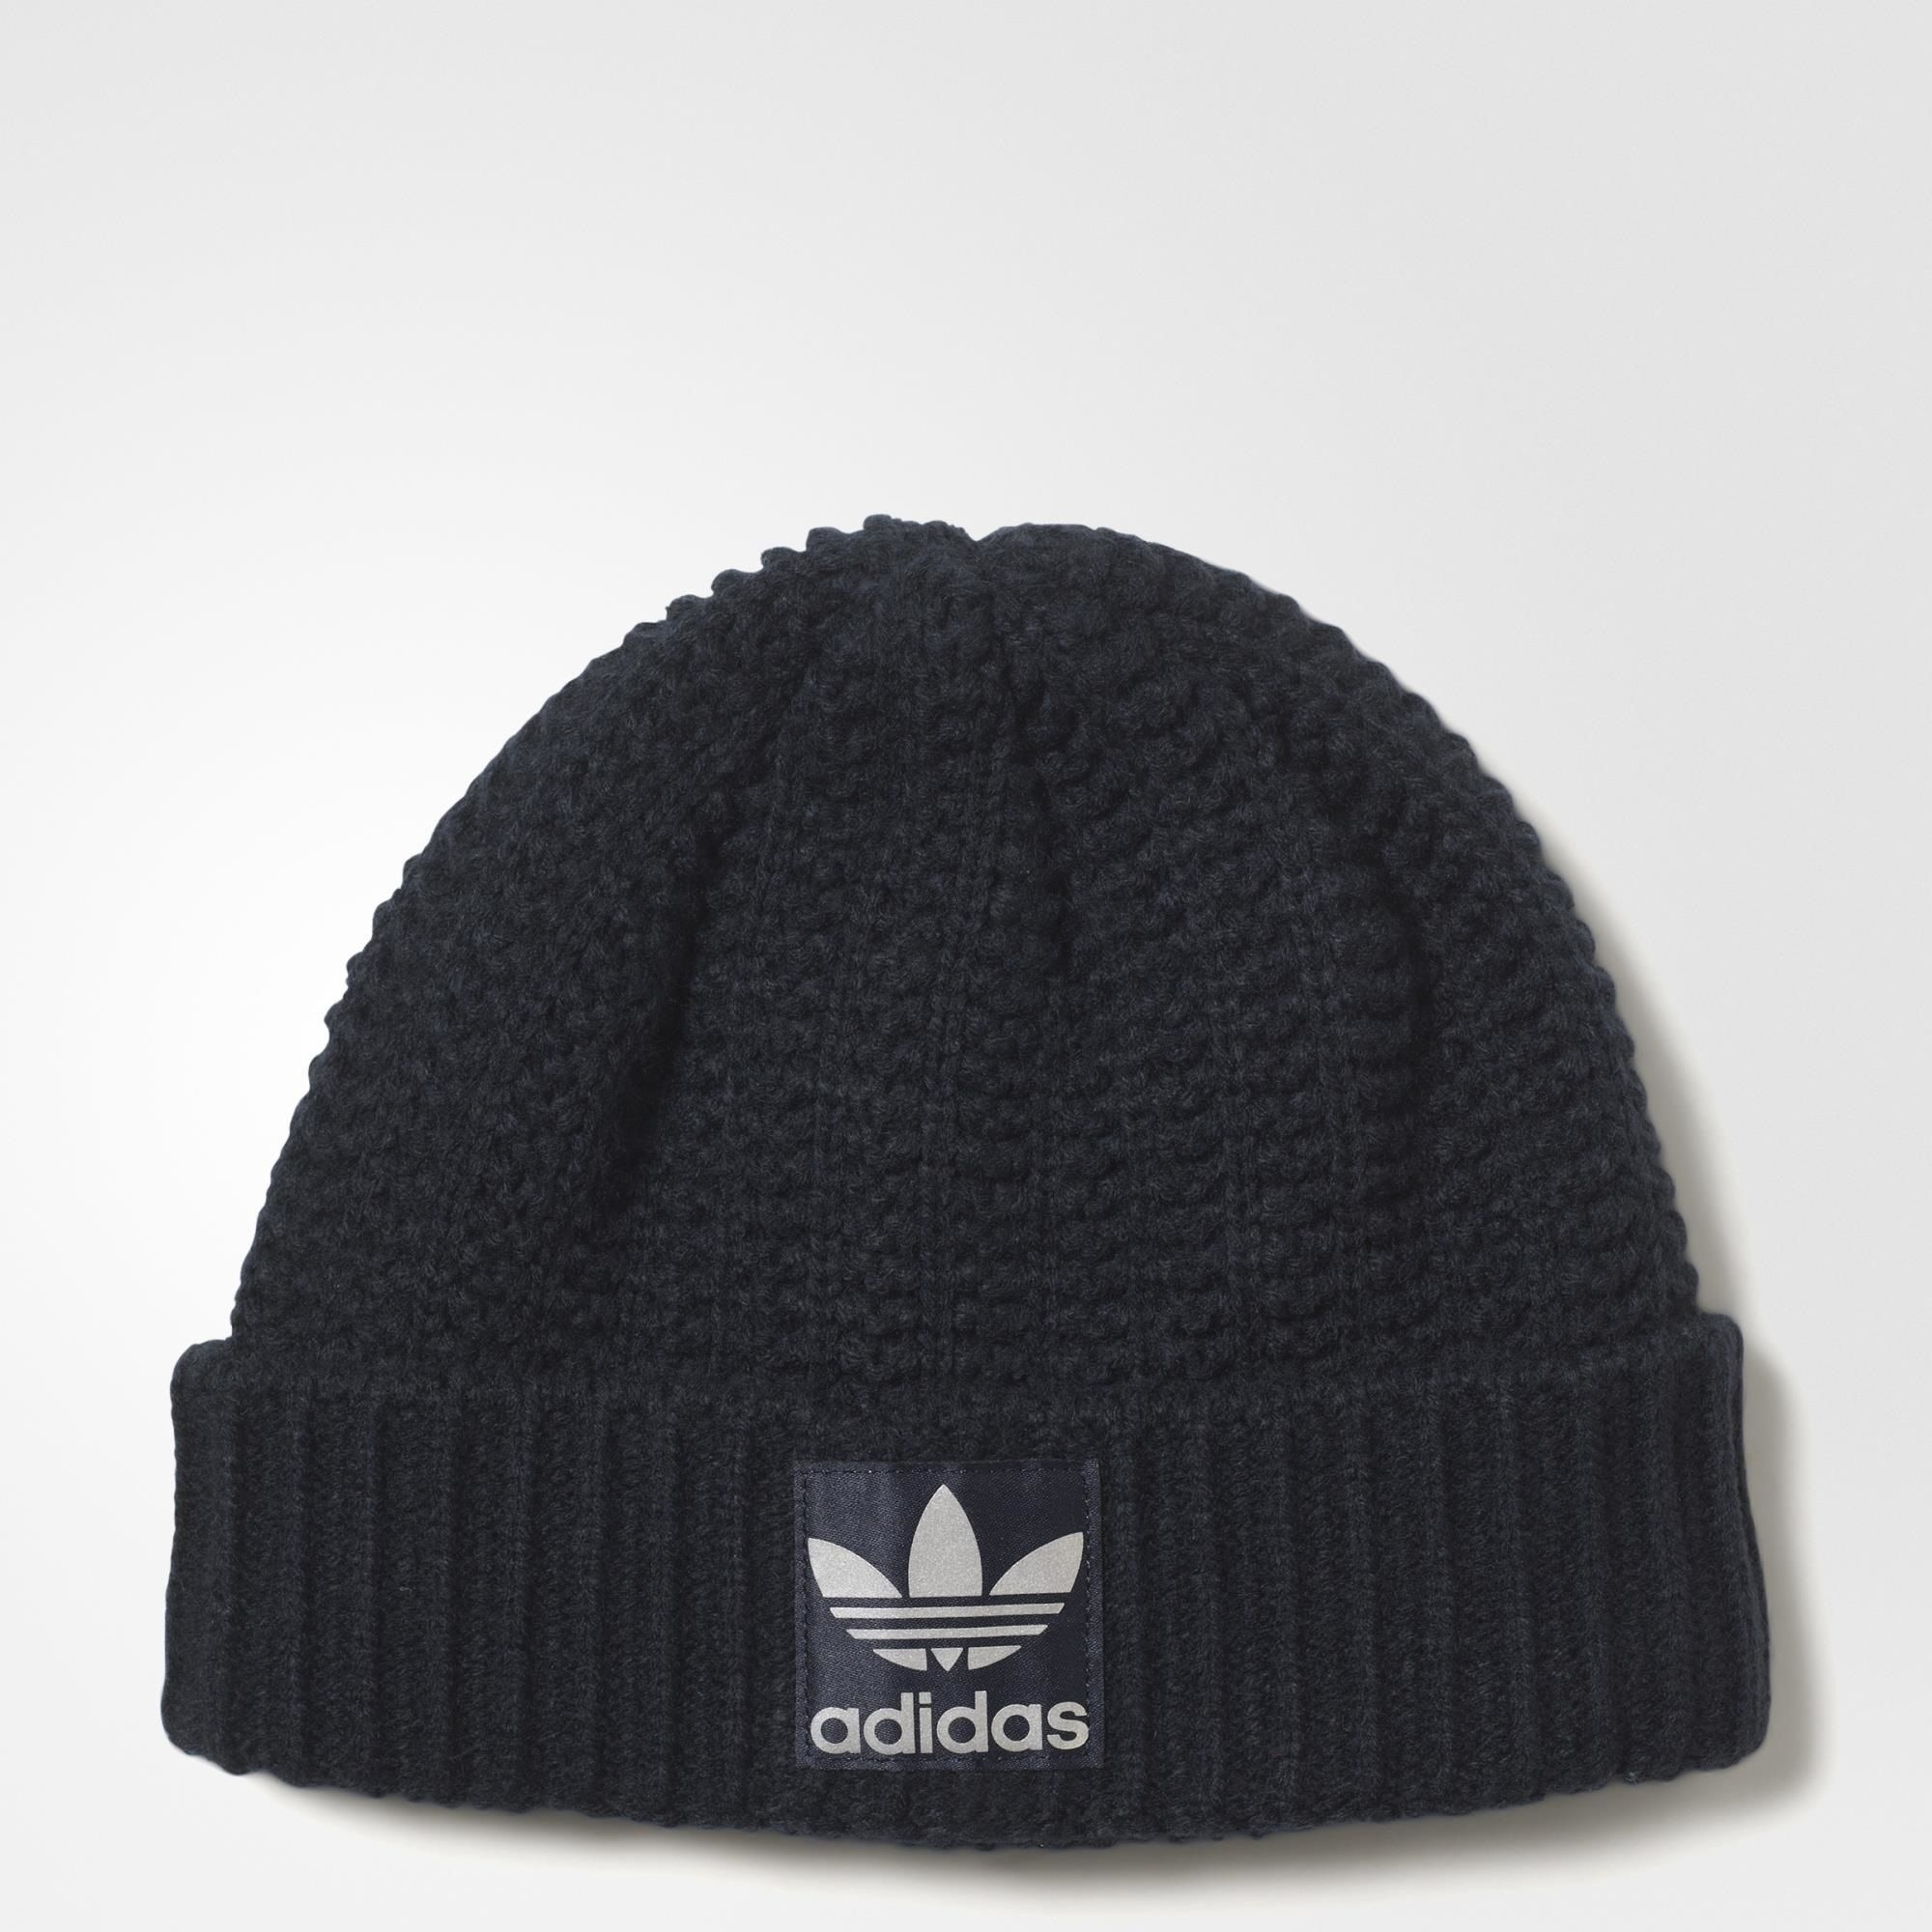 adidas Originals Womens Heavy Knit Trefoil Beanie Winter Hat ... d300689b49d